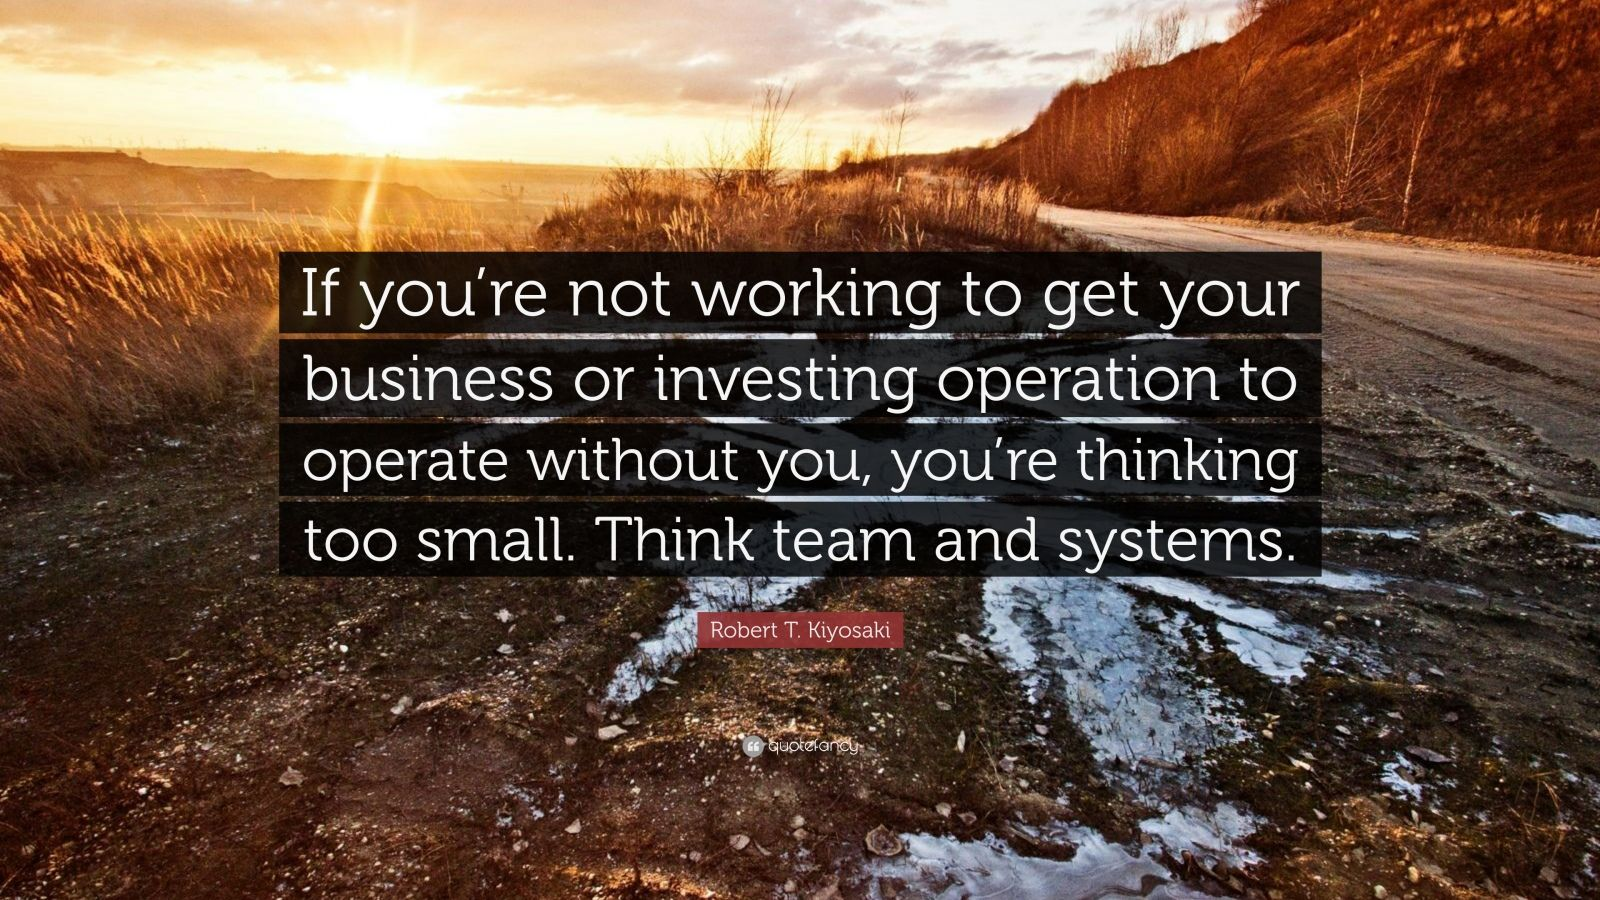 """Robert T. Kiyosaki Quote: """"If you're not working to get your business or investing operation to operate without you, you're thinking too small. Think team and systems."""""""